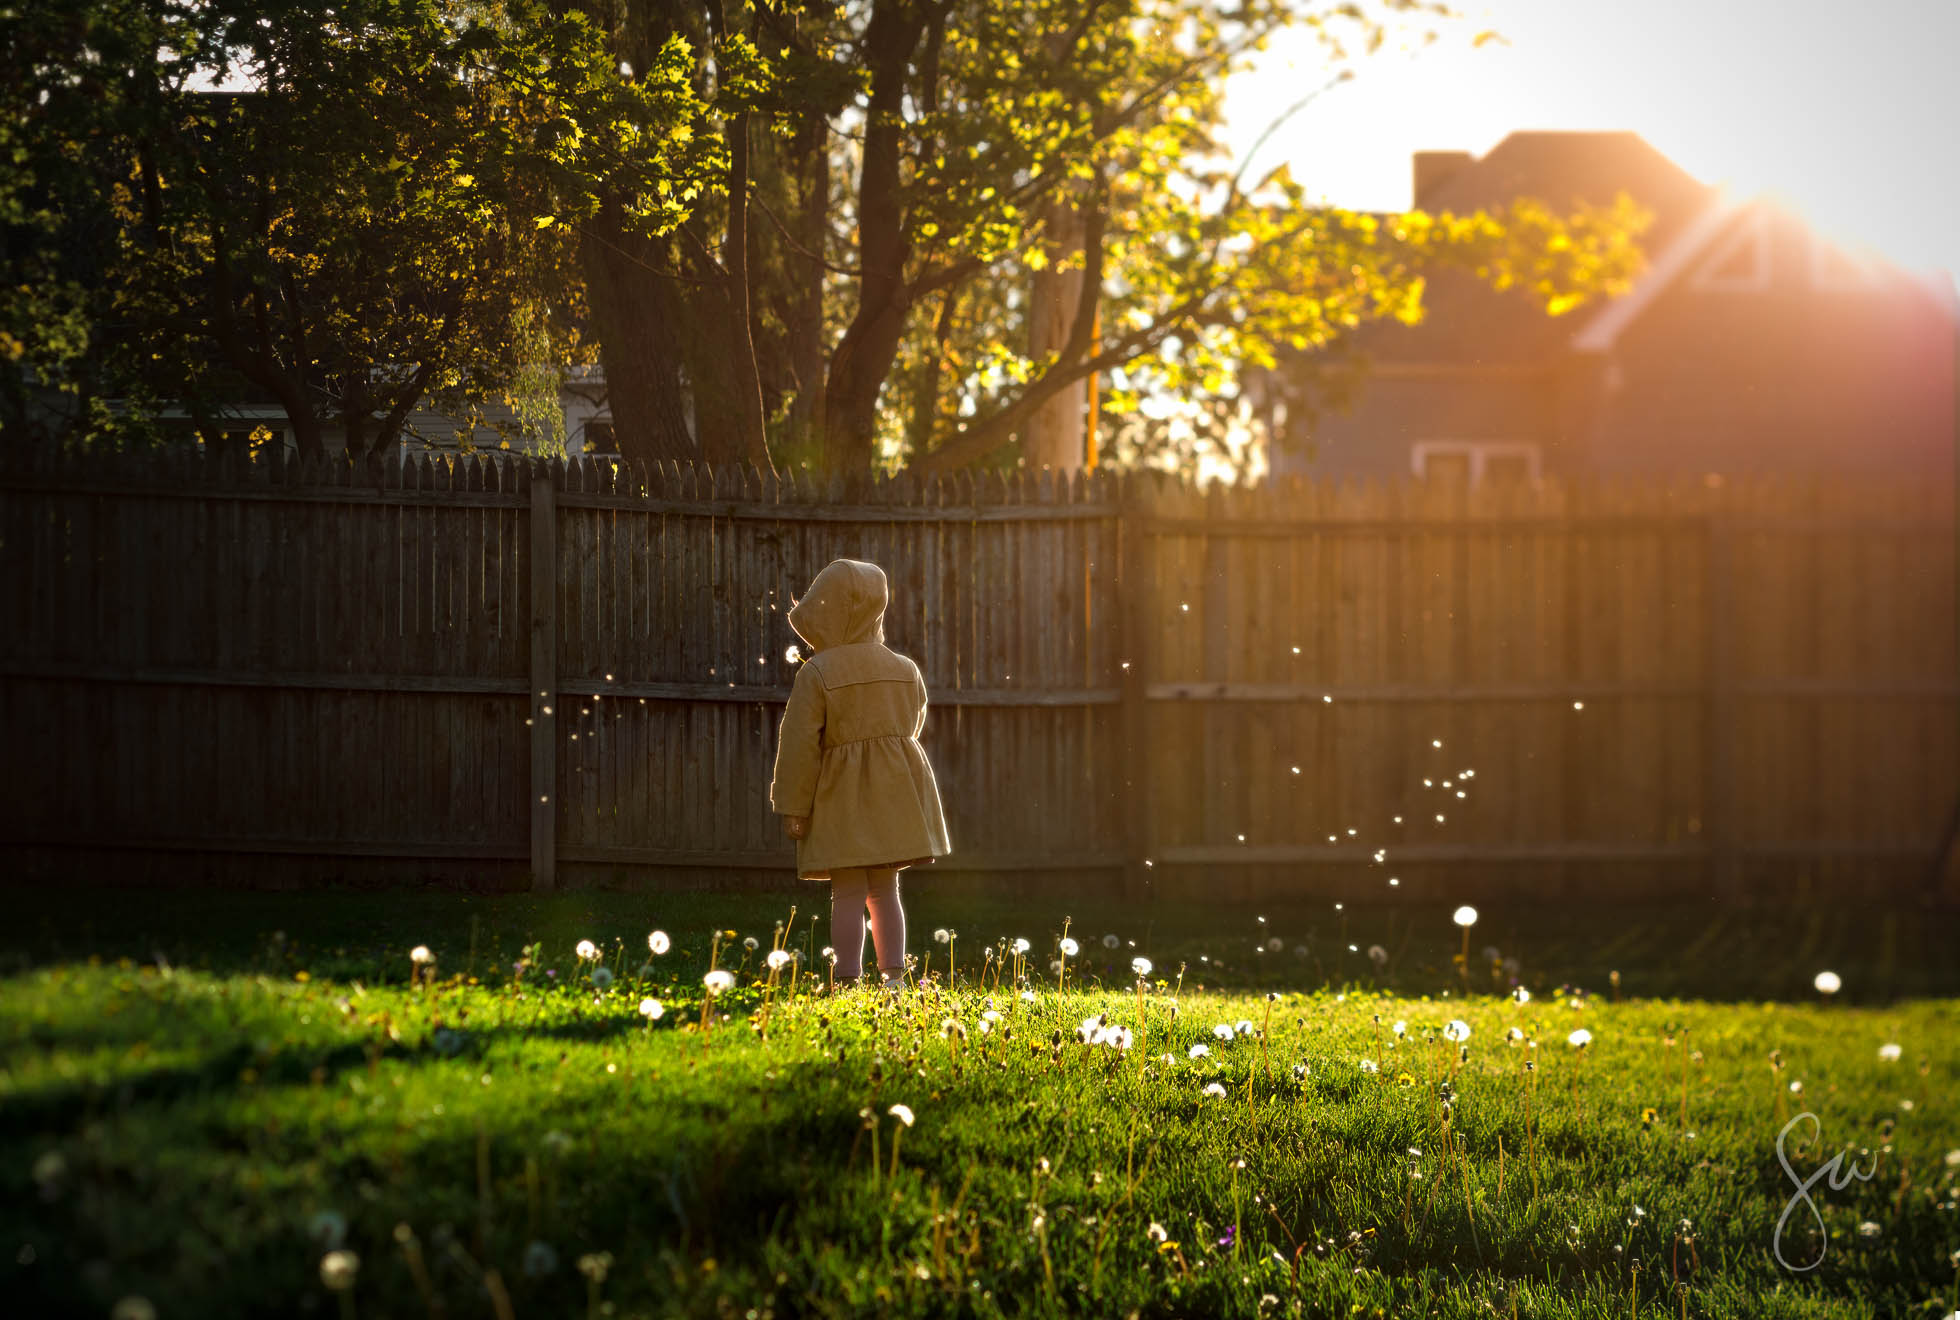 Children-Playing-with-Dandelions-in-the-Backyard-and-Blowing-Seeds-that-Look-Like-Snow-in-Backlighting-at-Golden-Hour-